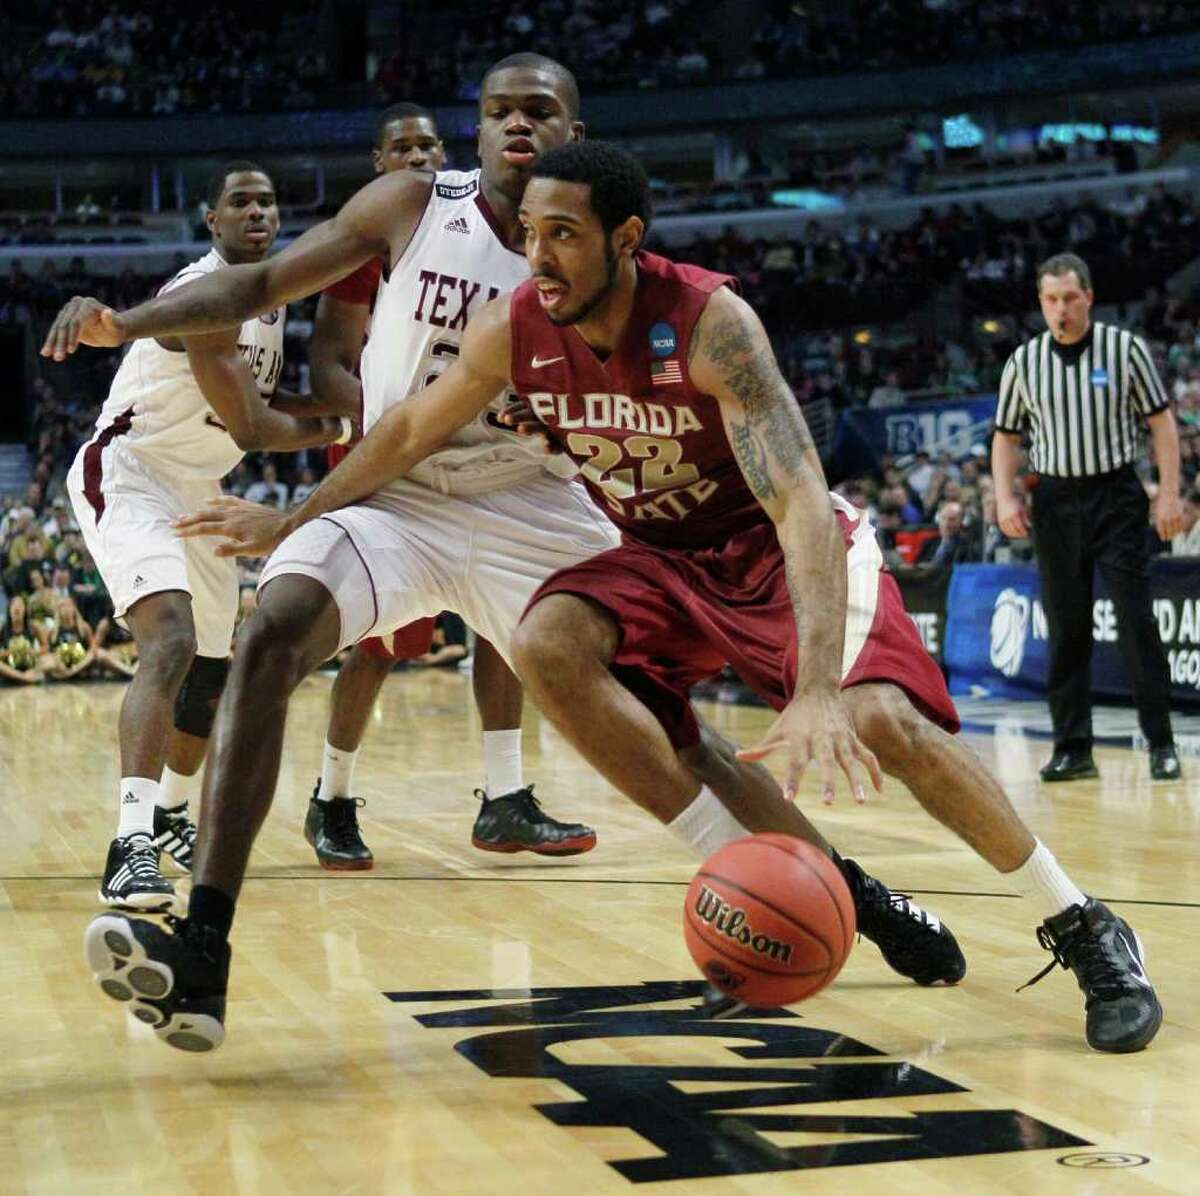 Florida State's Derwin Kitchen (22) drives around Texas A&M's Naji Hibbert in the first half of a second-round NCAA Southwest Regional tournament college basketball game in Chicago, Friday, March 18, 2011.